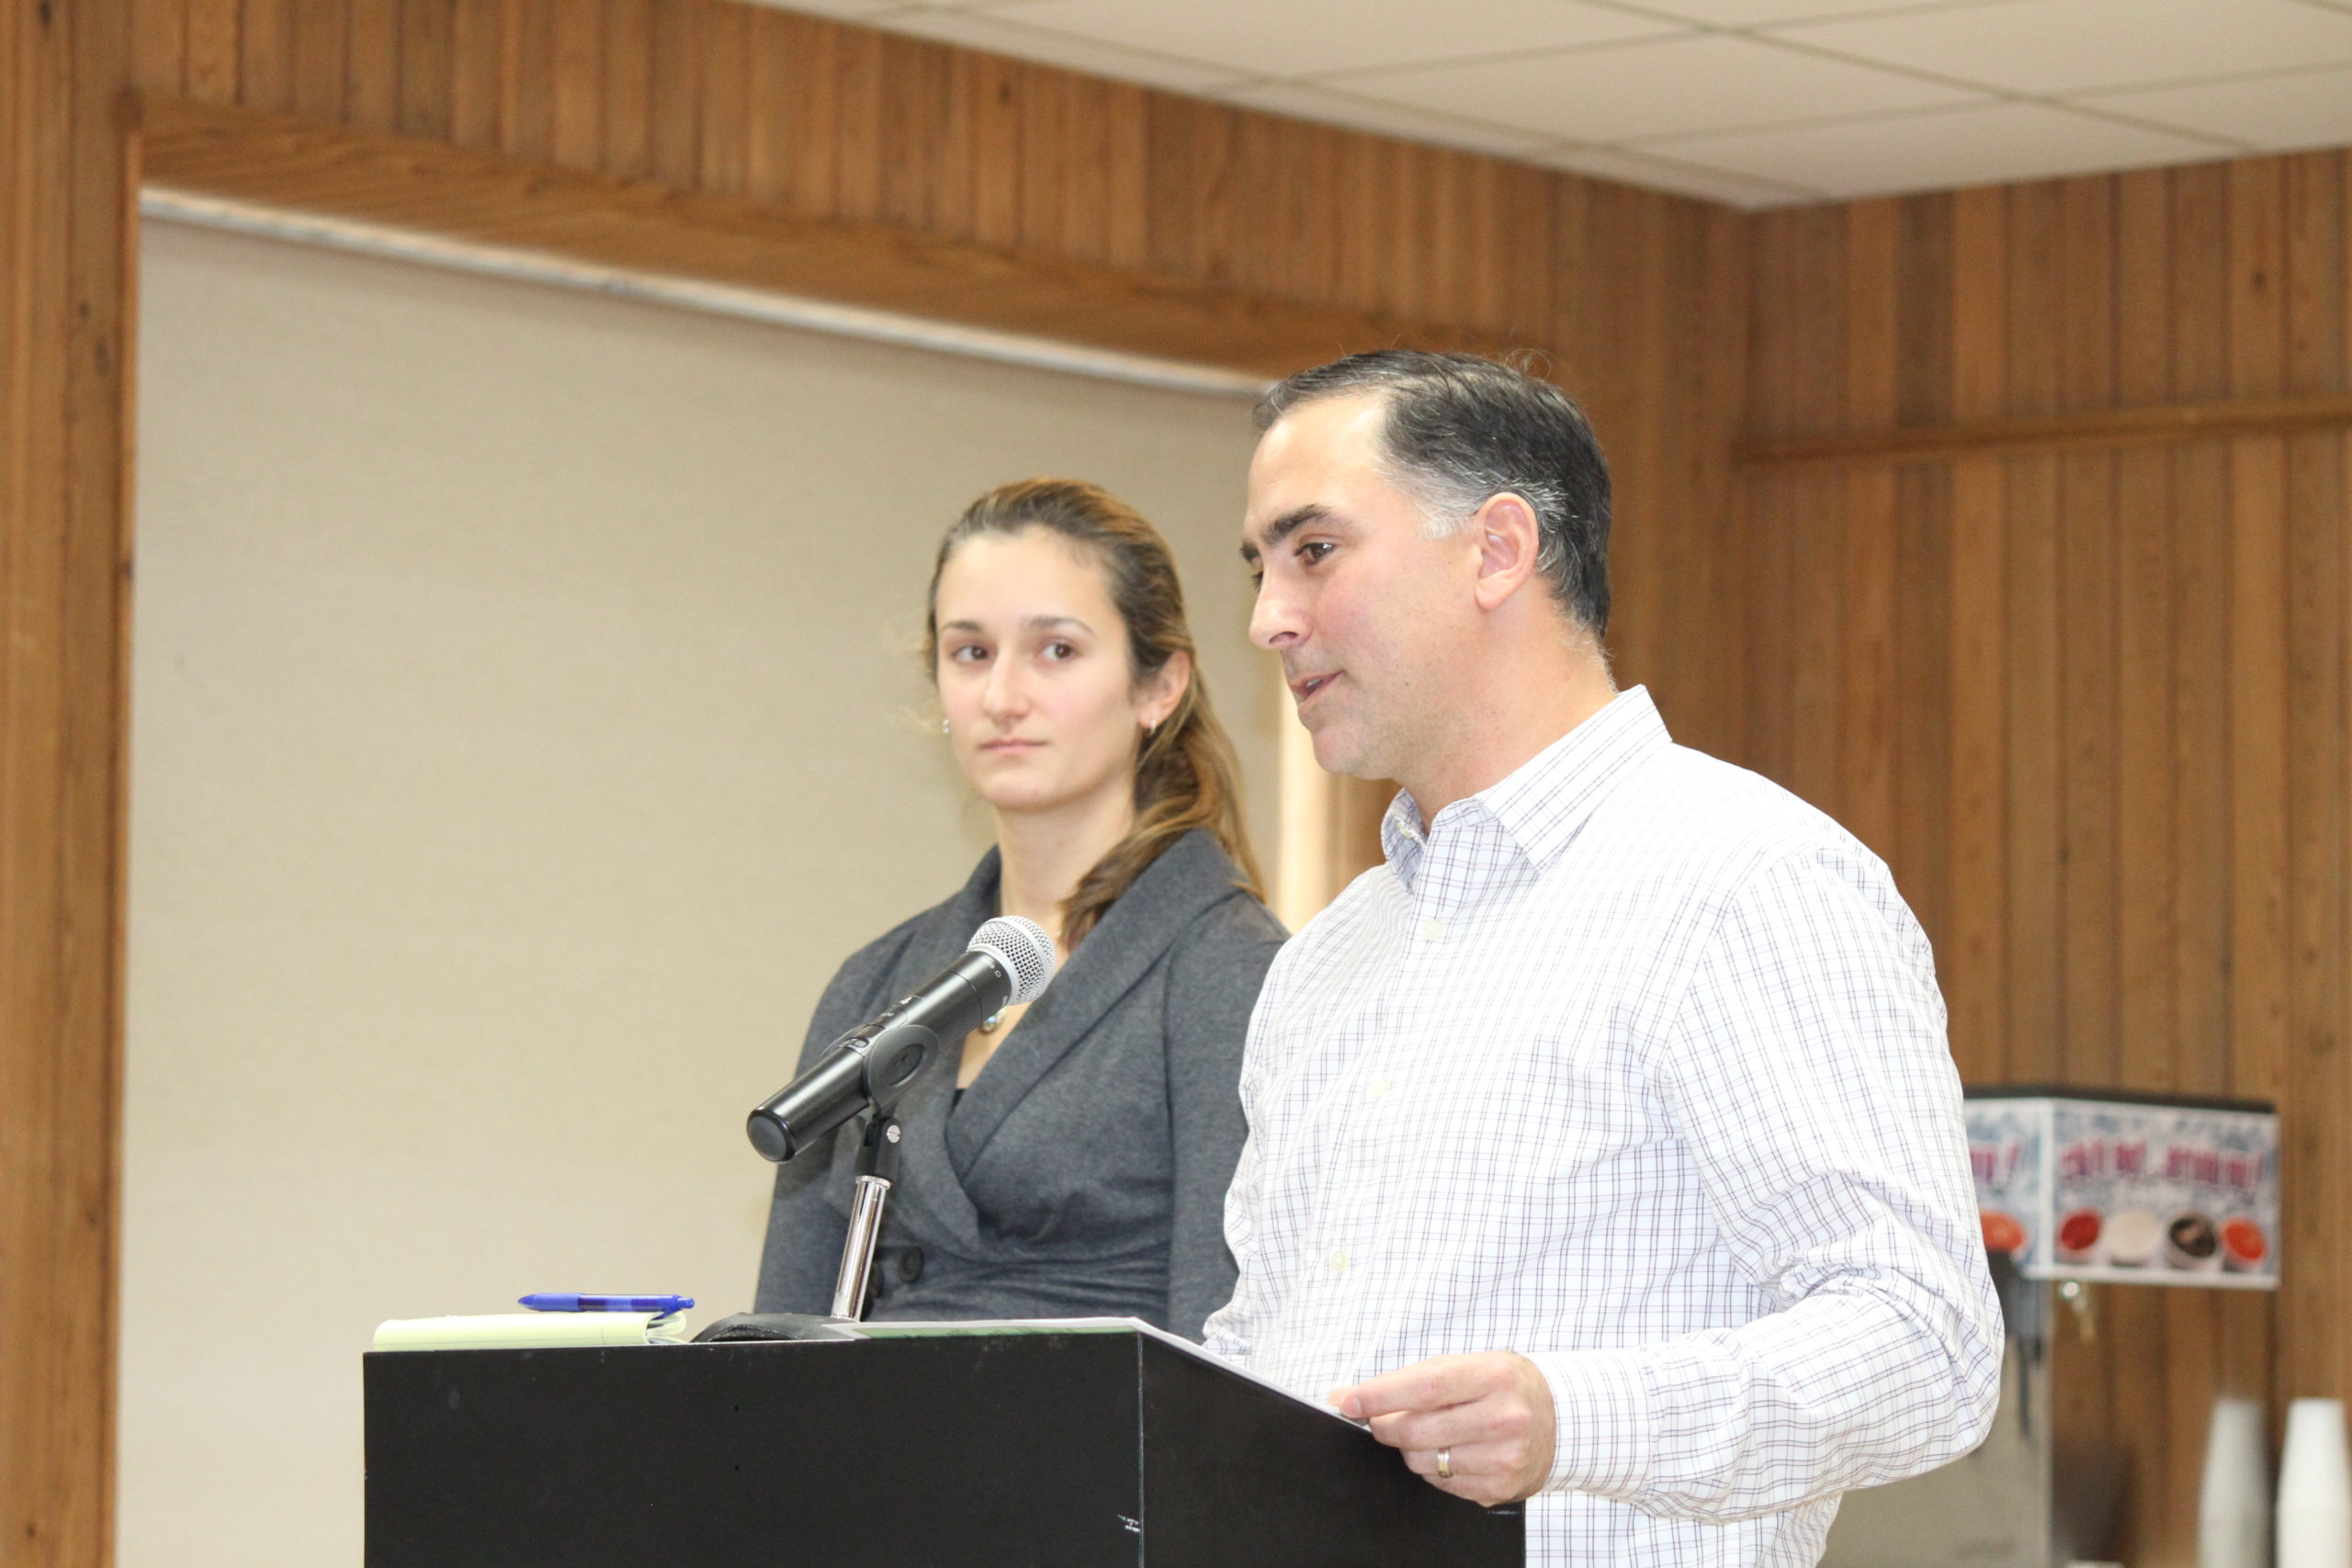 Chris Clapp and Melissa Winslow serve on East Hampton Town's Water Quality Technical Advisory Committee.